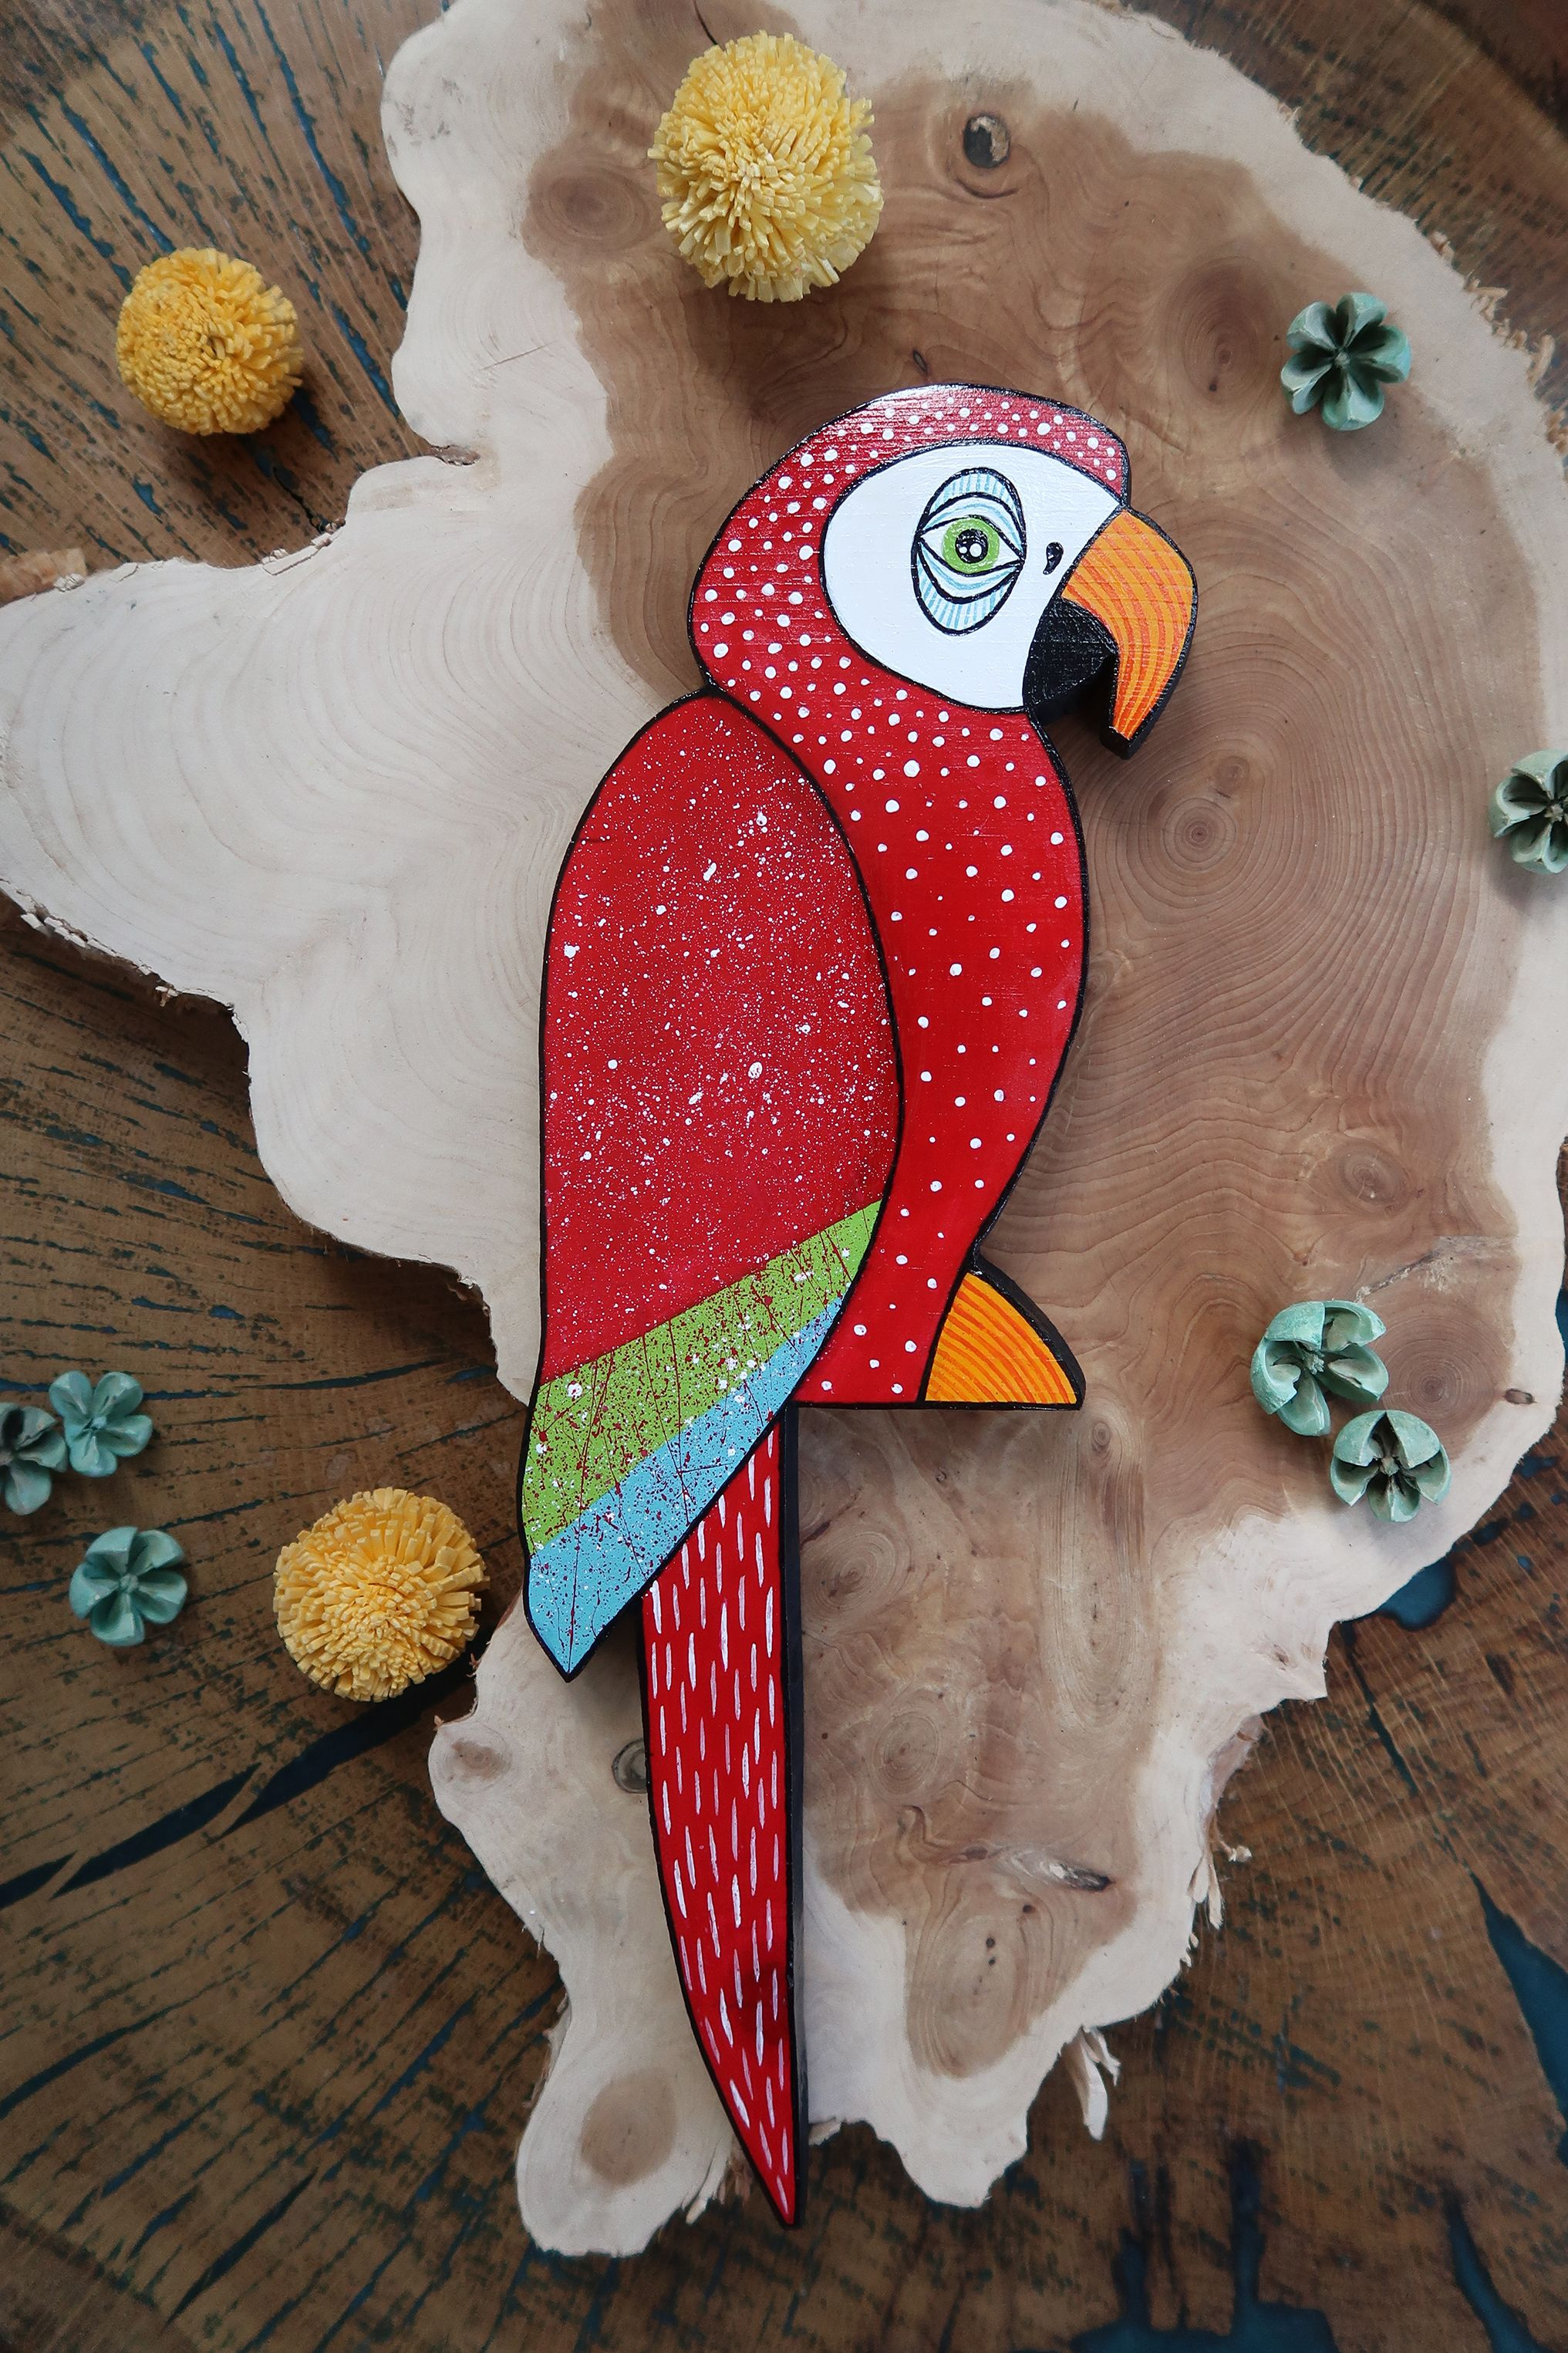 Red Parrot Home Decor Decoration Ornament Shelf Wall Jungle Inspired Wooden Hand Painted Bird Hand Painted Wooden Bird Wooden Hand